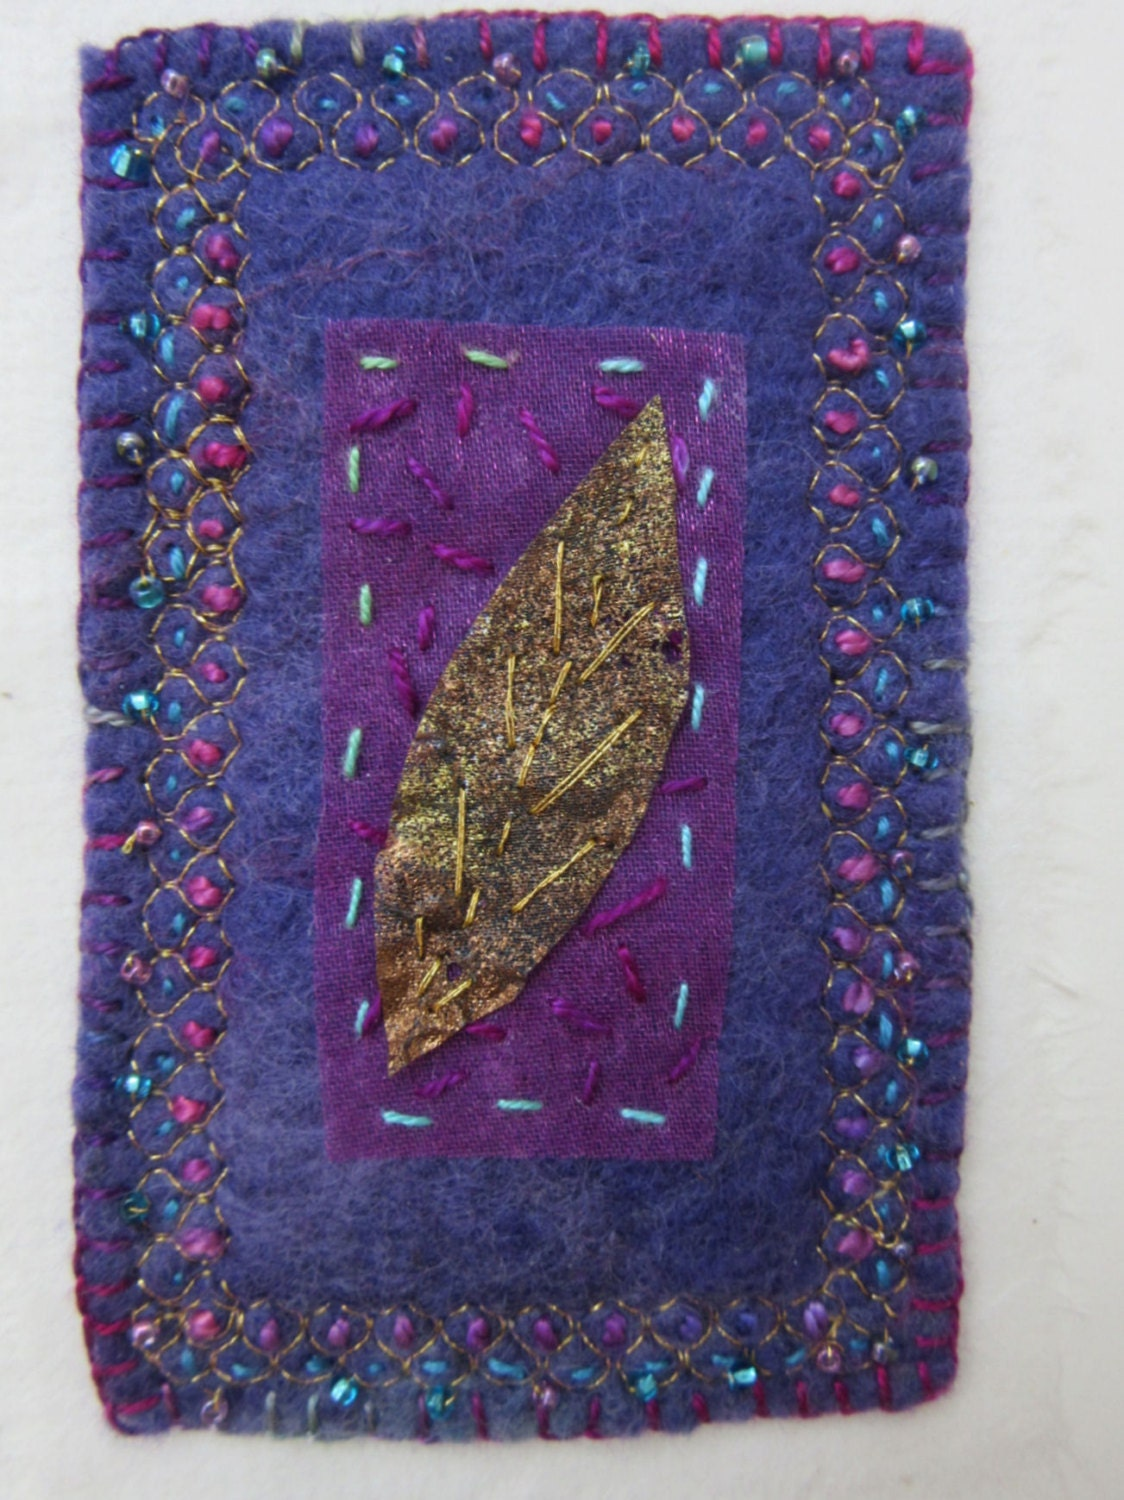 Embroidered leaf picture contemporary art embroidery in